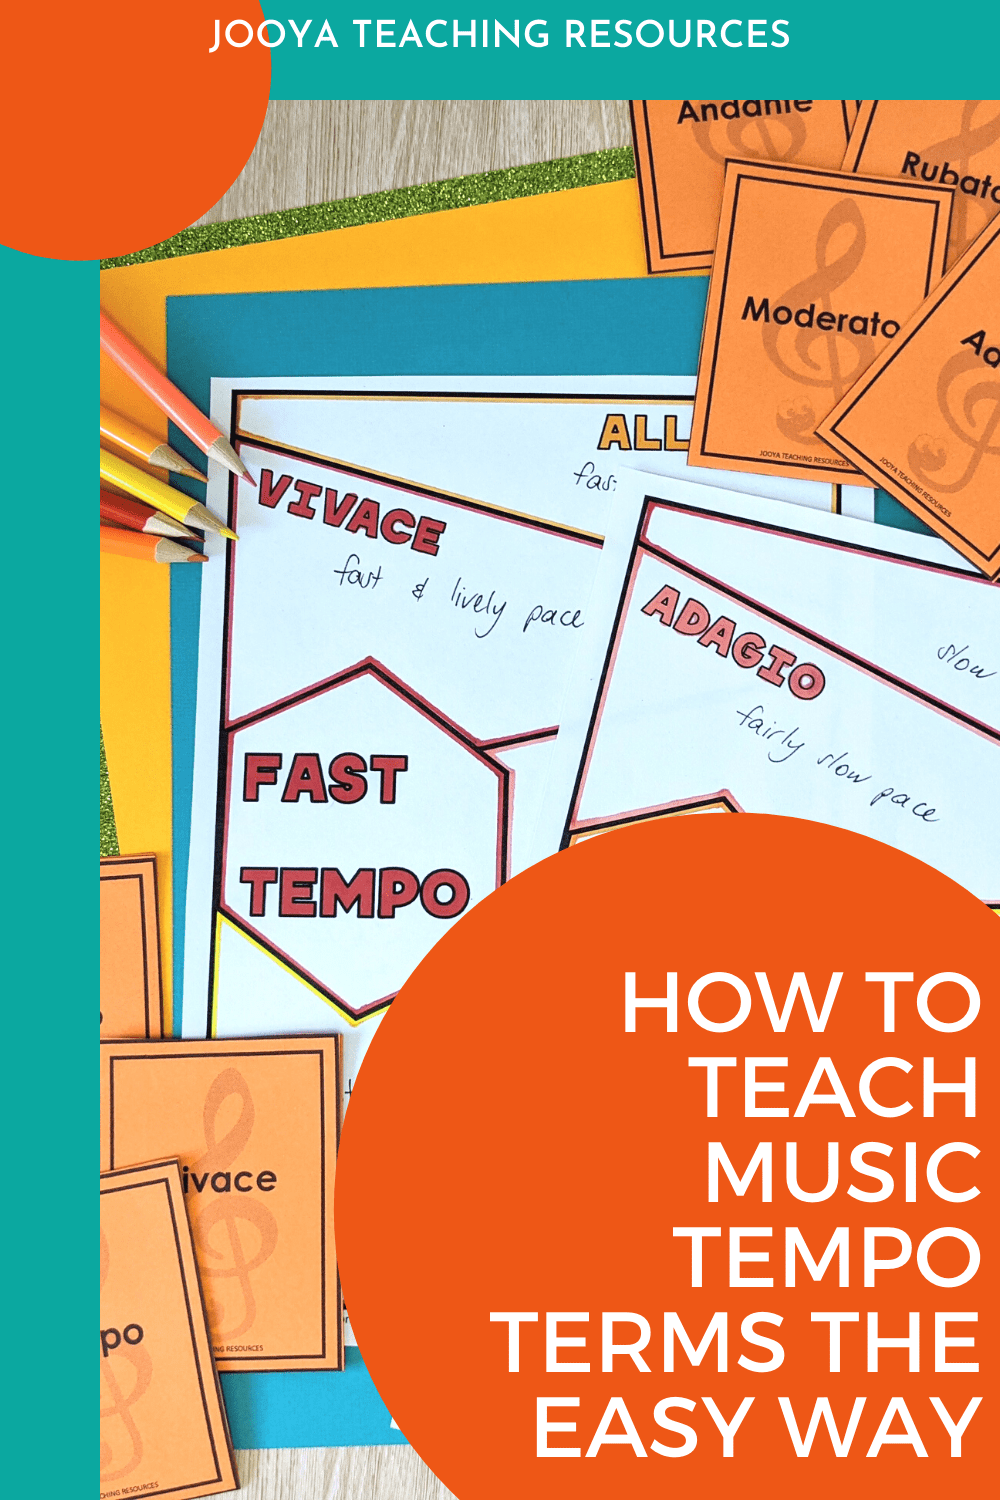 how-to-teach-music-tempo-terms-the-easy-way-pin-2021